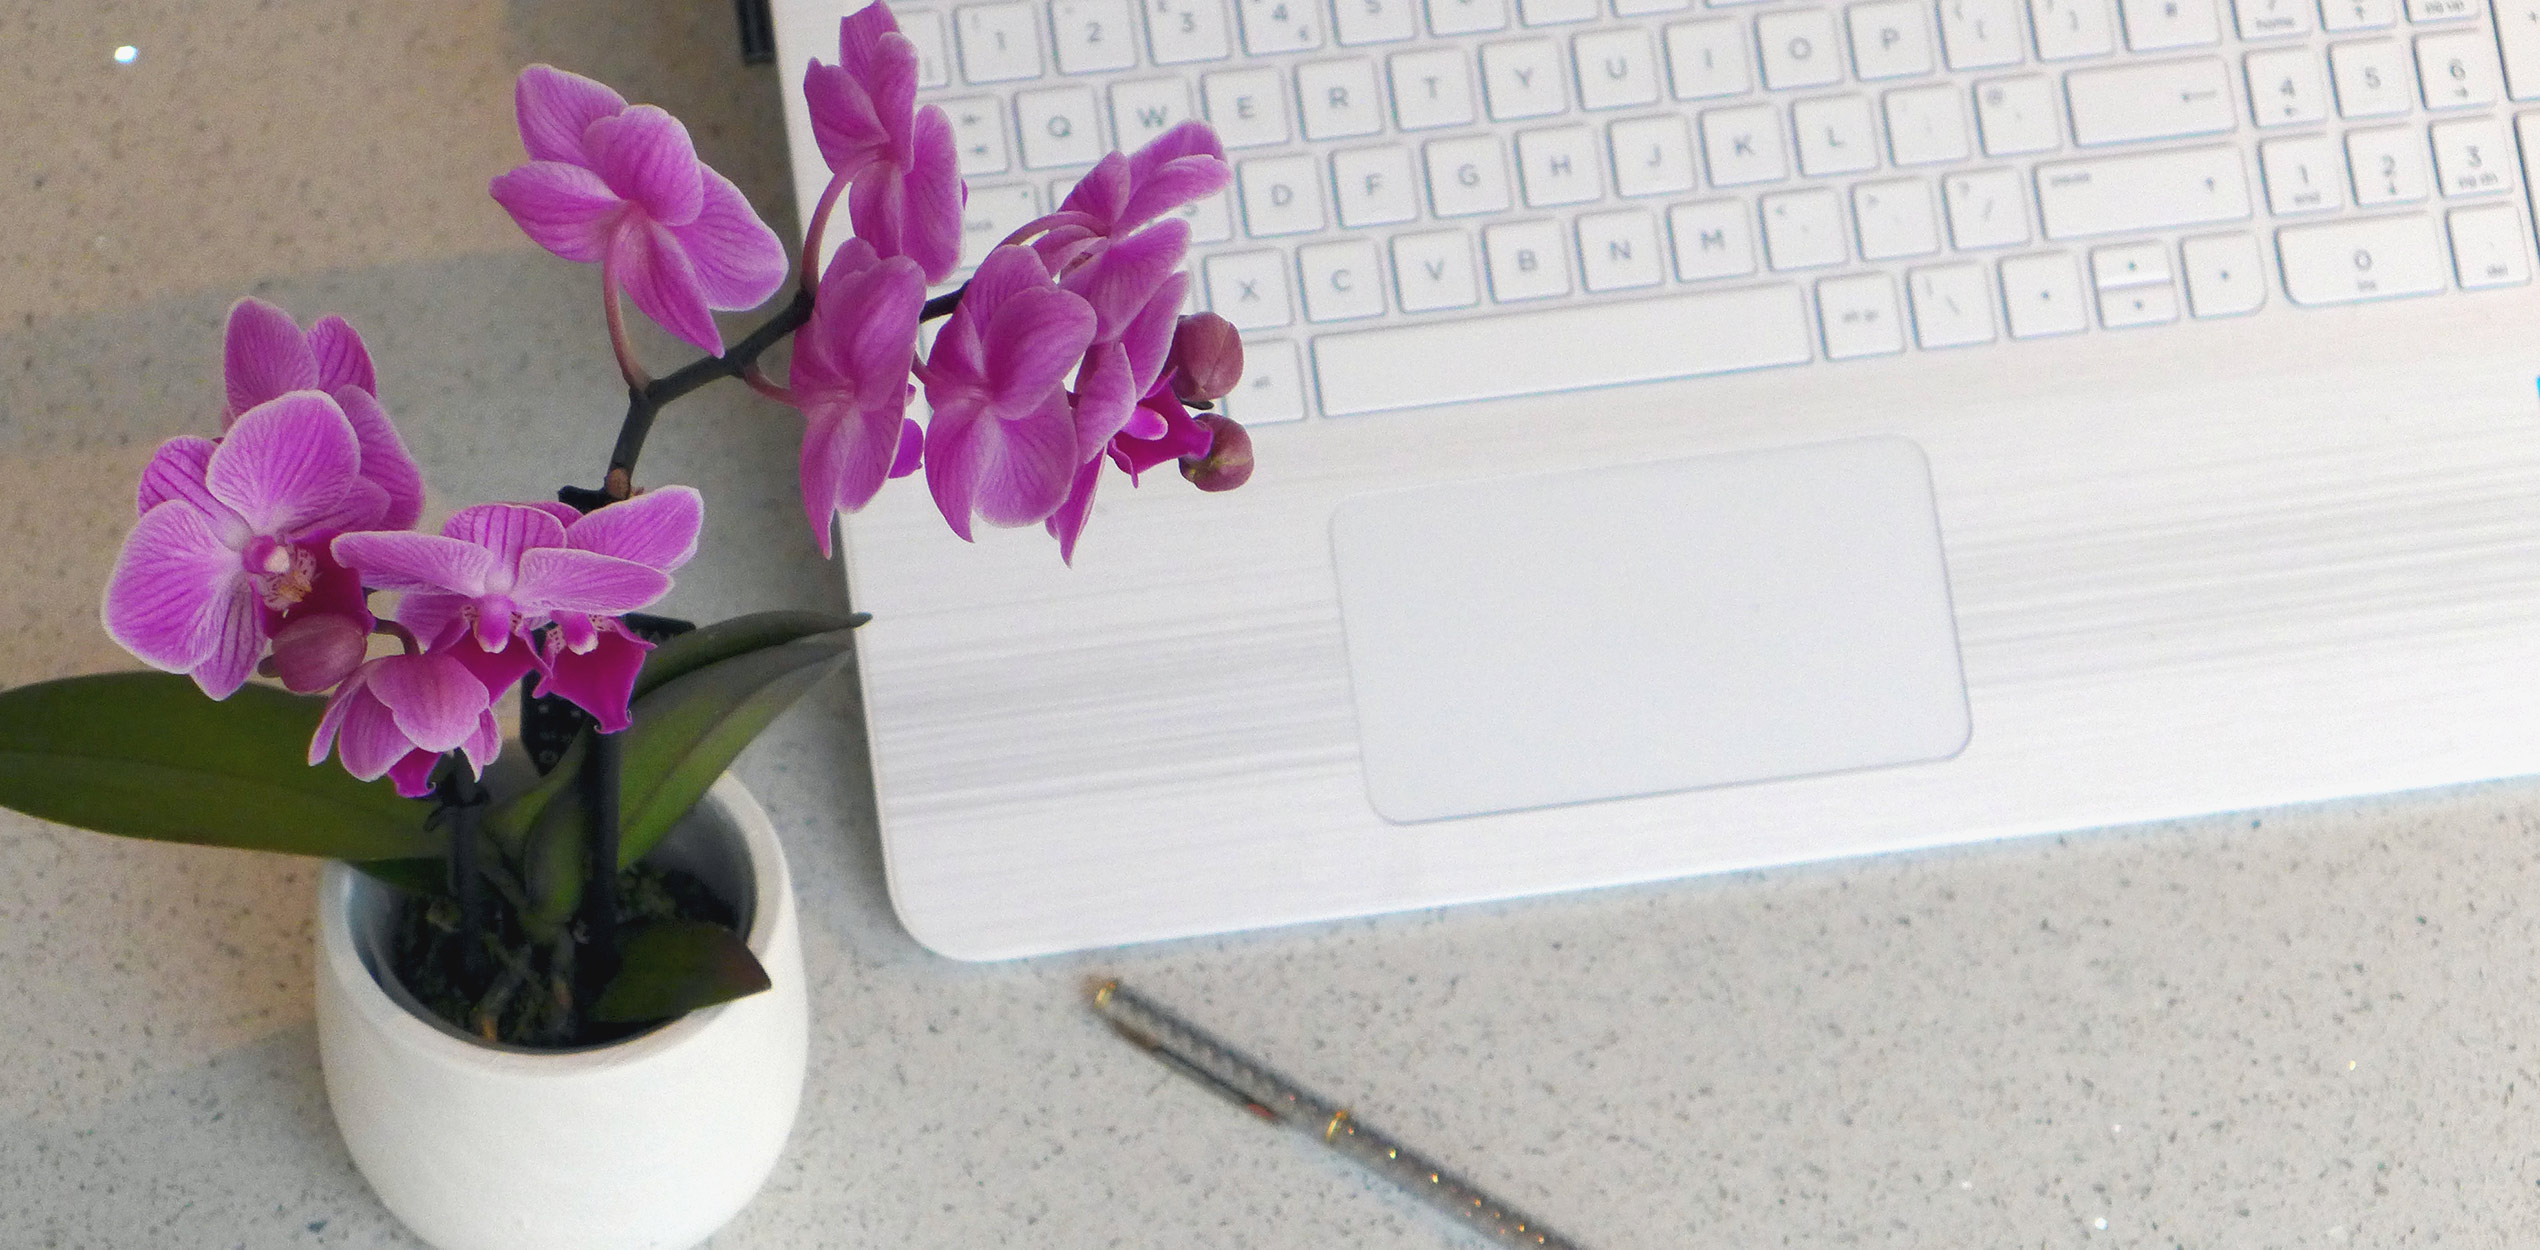 Seven Top Tips For Working From Home